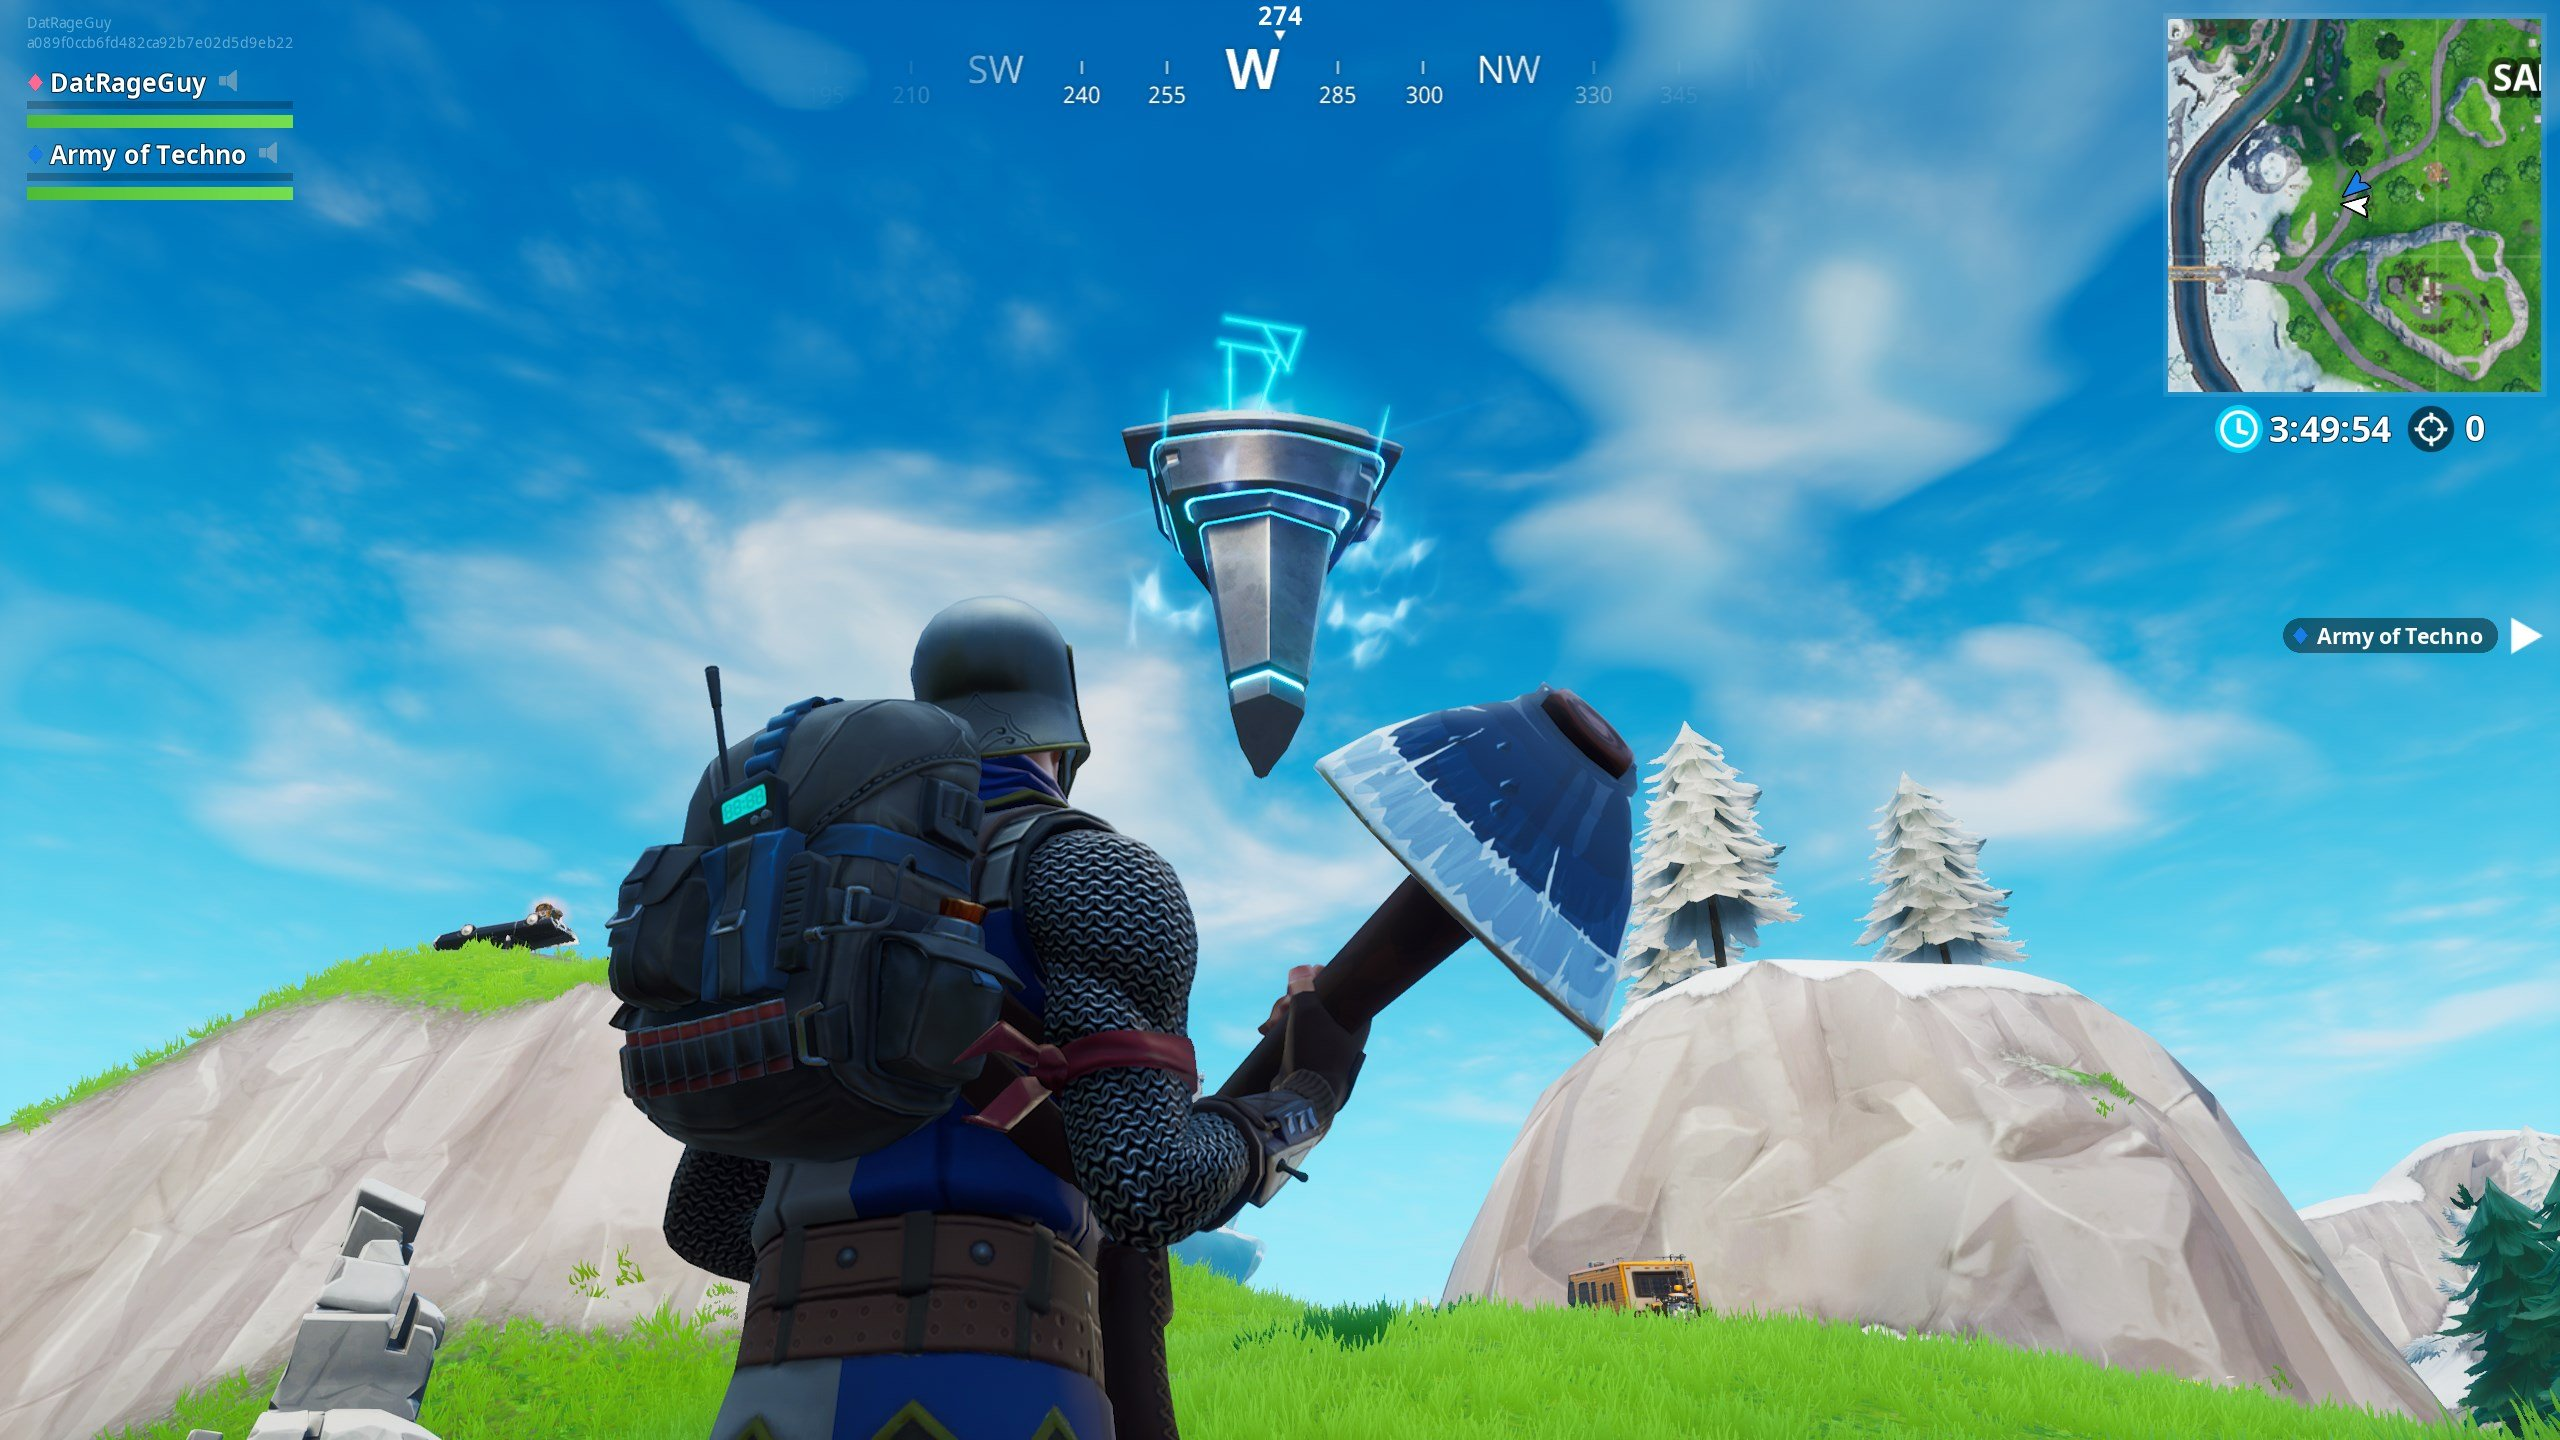 Fortnite Loot Lake in-game event, Rune #1